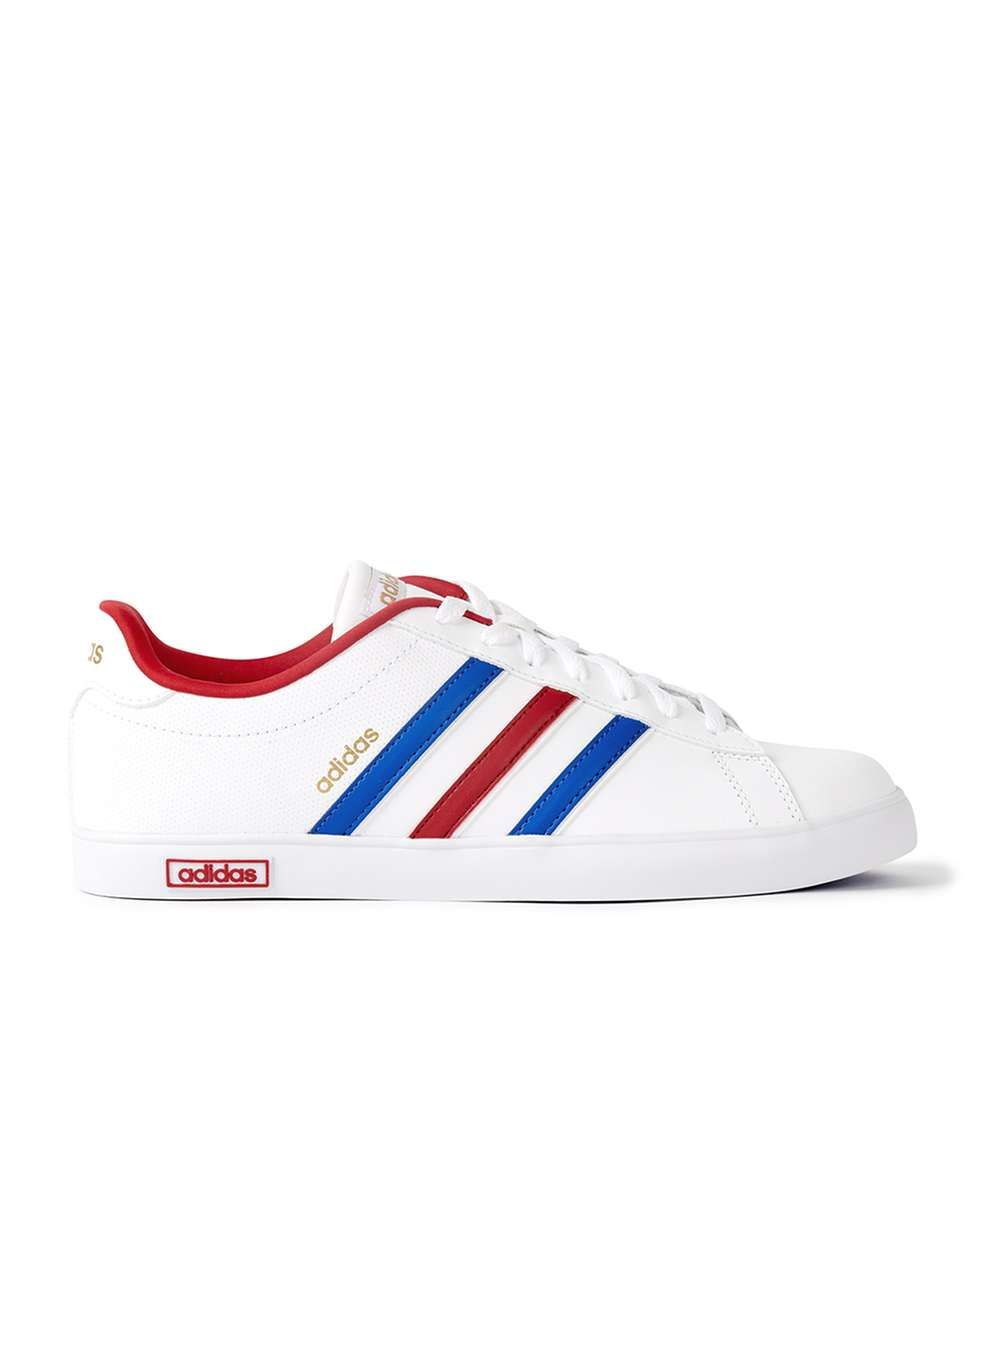 new style edf51 3d2bc adidas Neo Derby Vulc White Sneakers